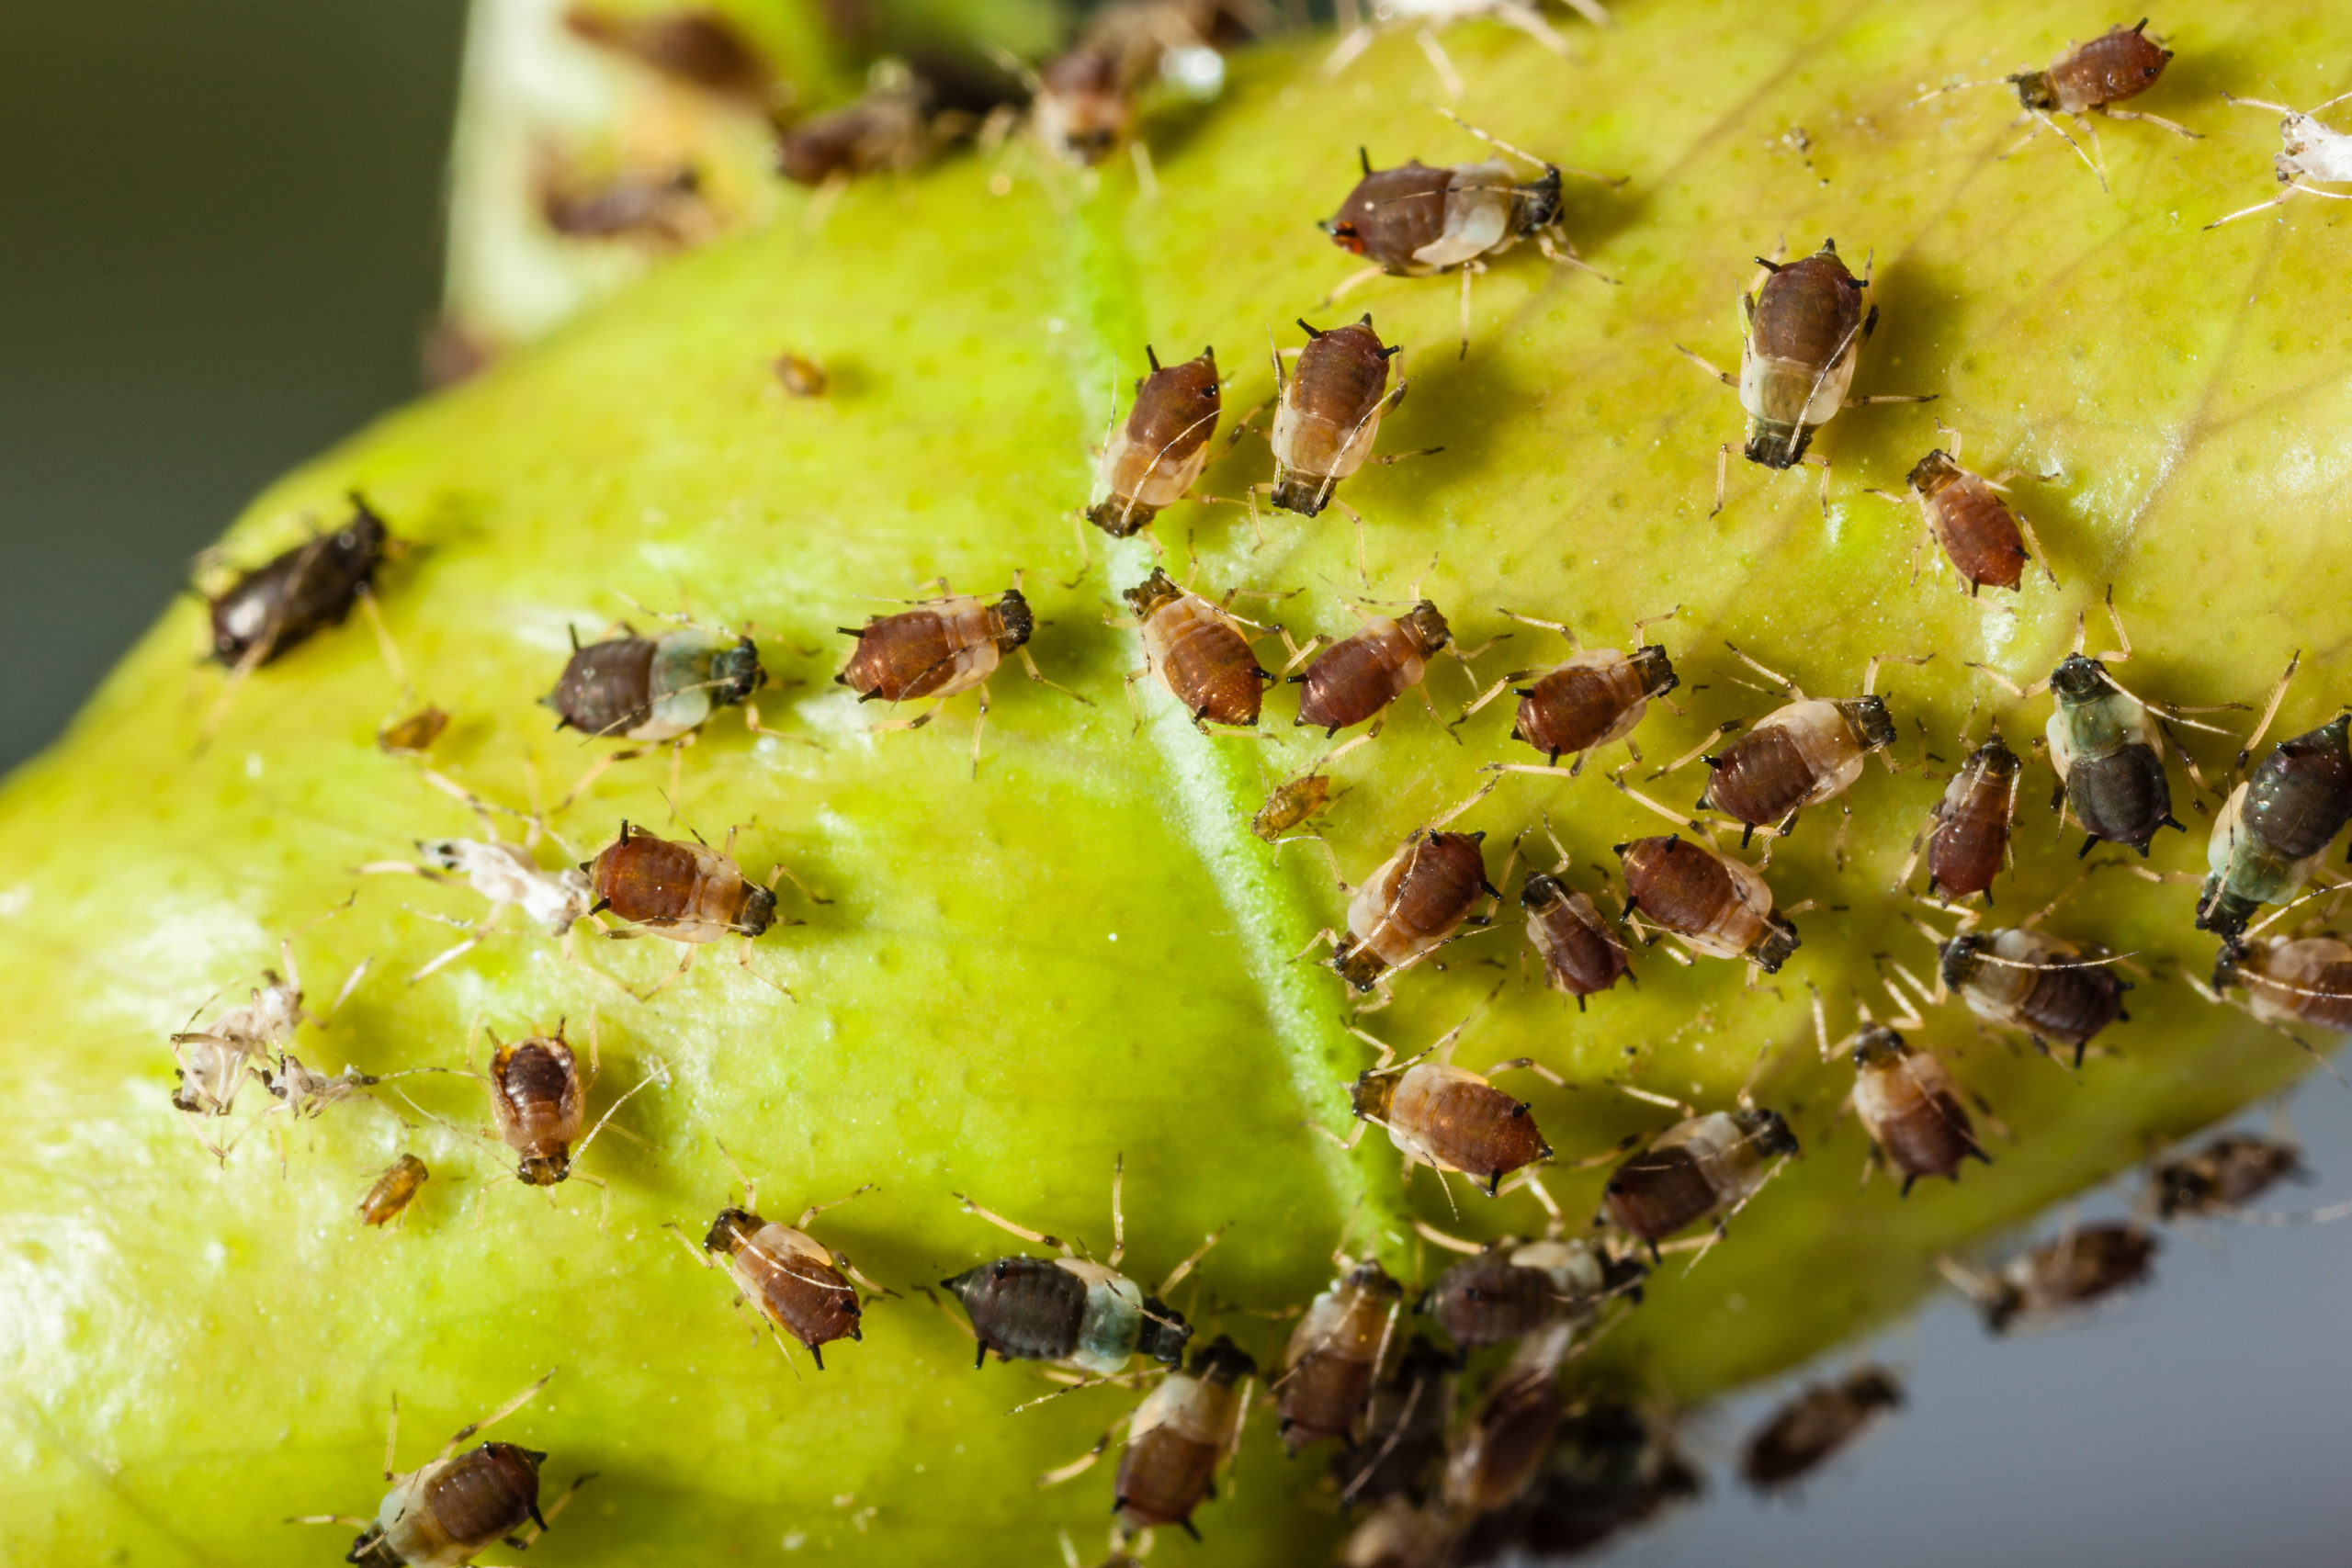 using biologics to control aphids